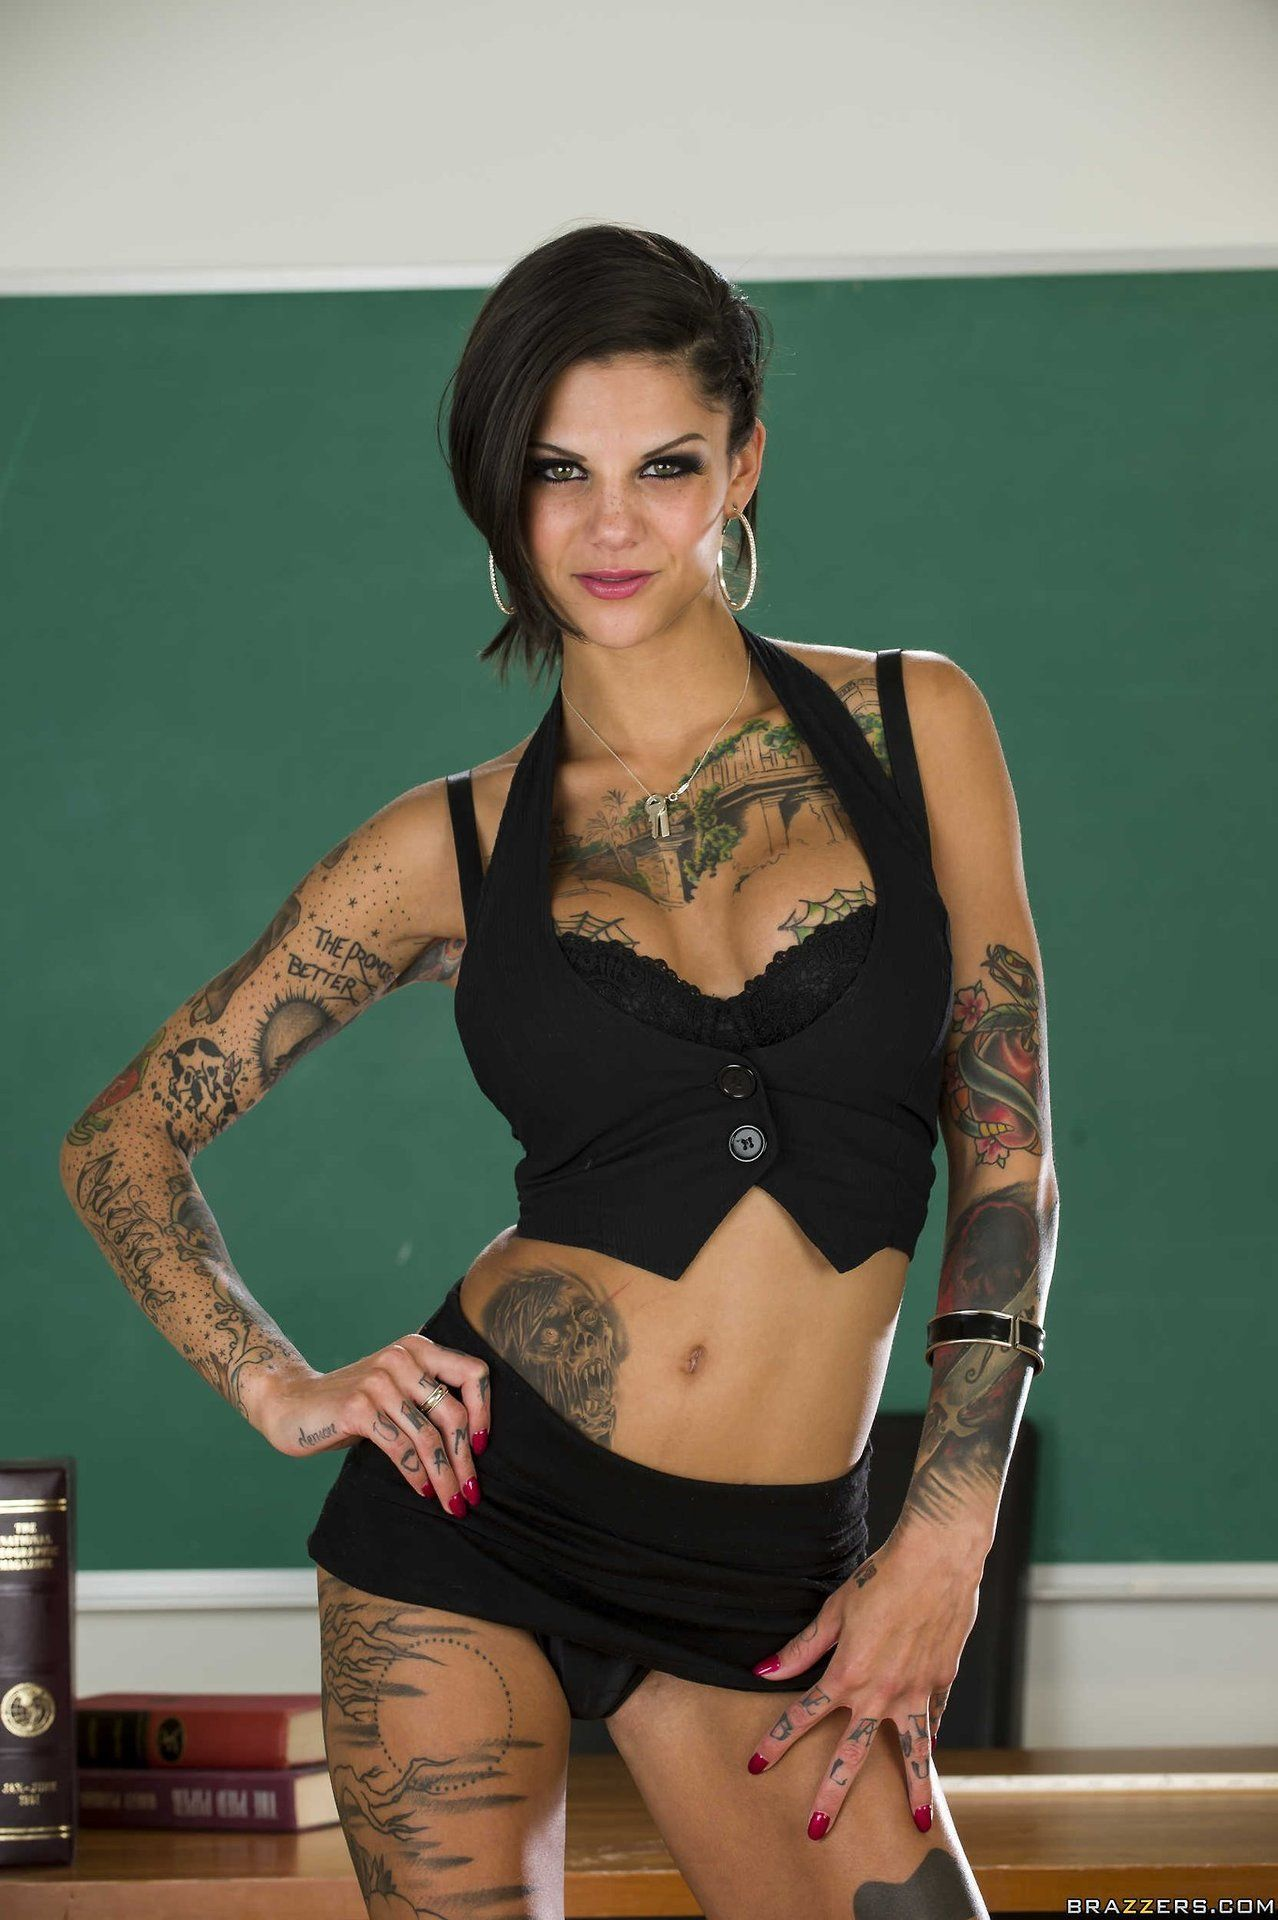 bonnie rotten | hotties double take | pinterest | bonnie rotten